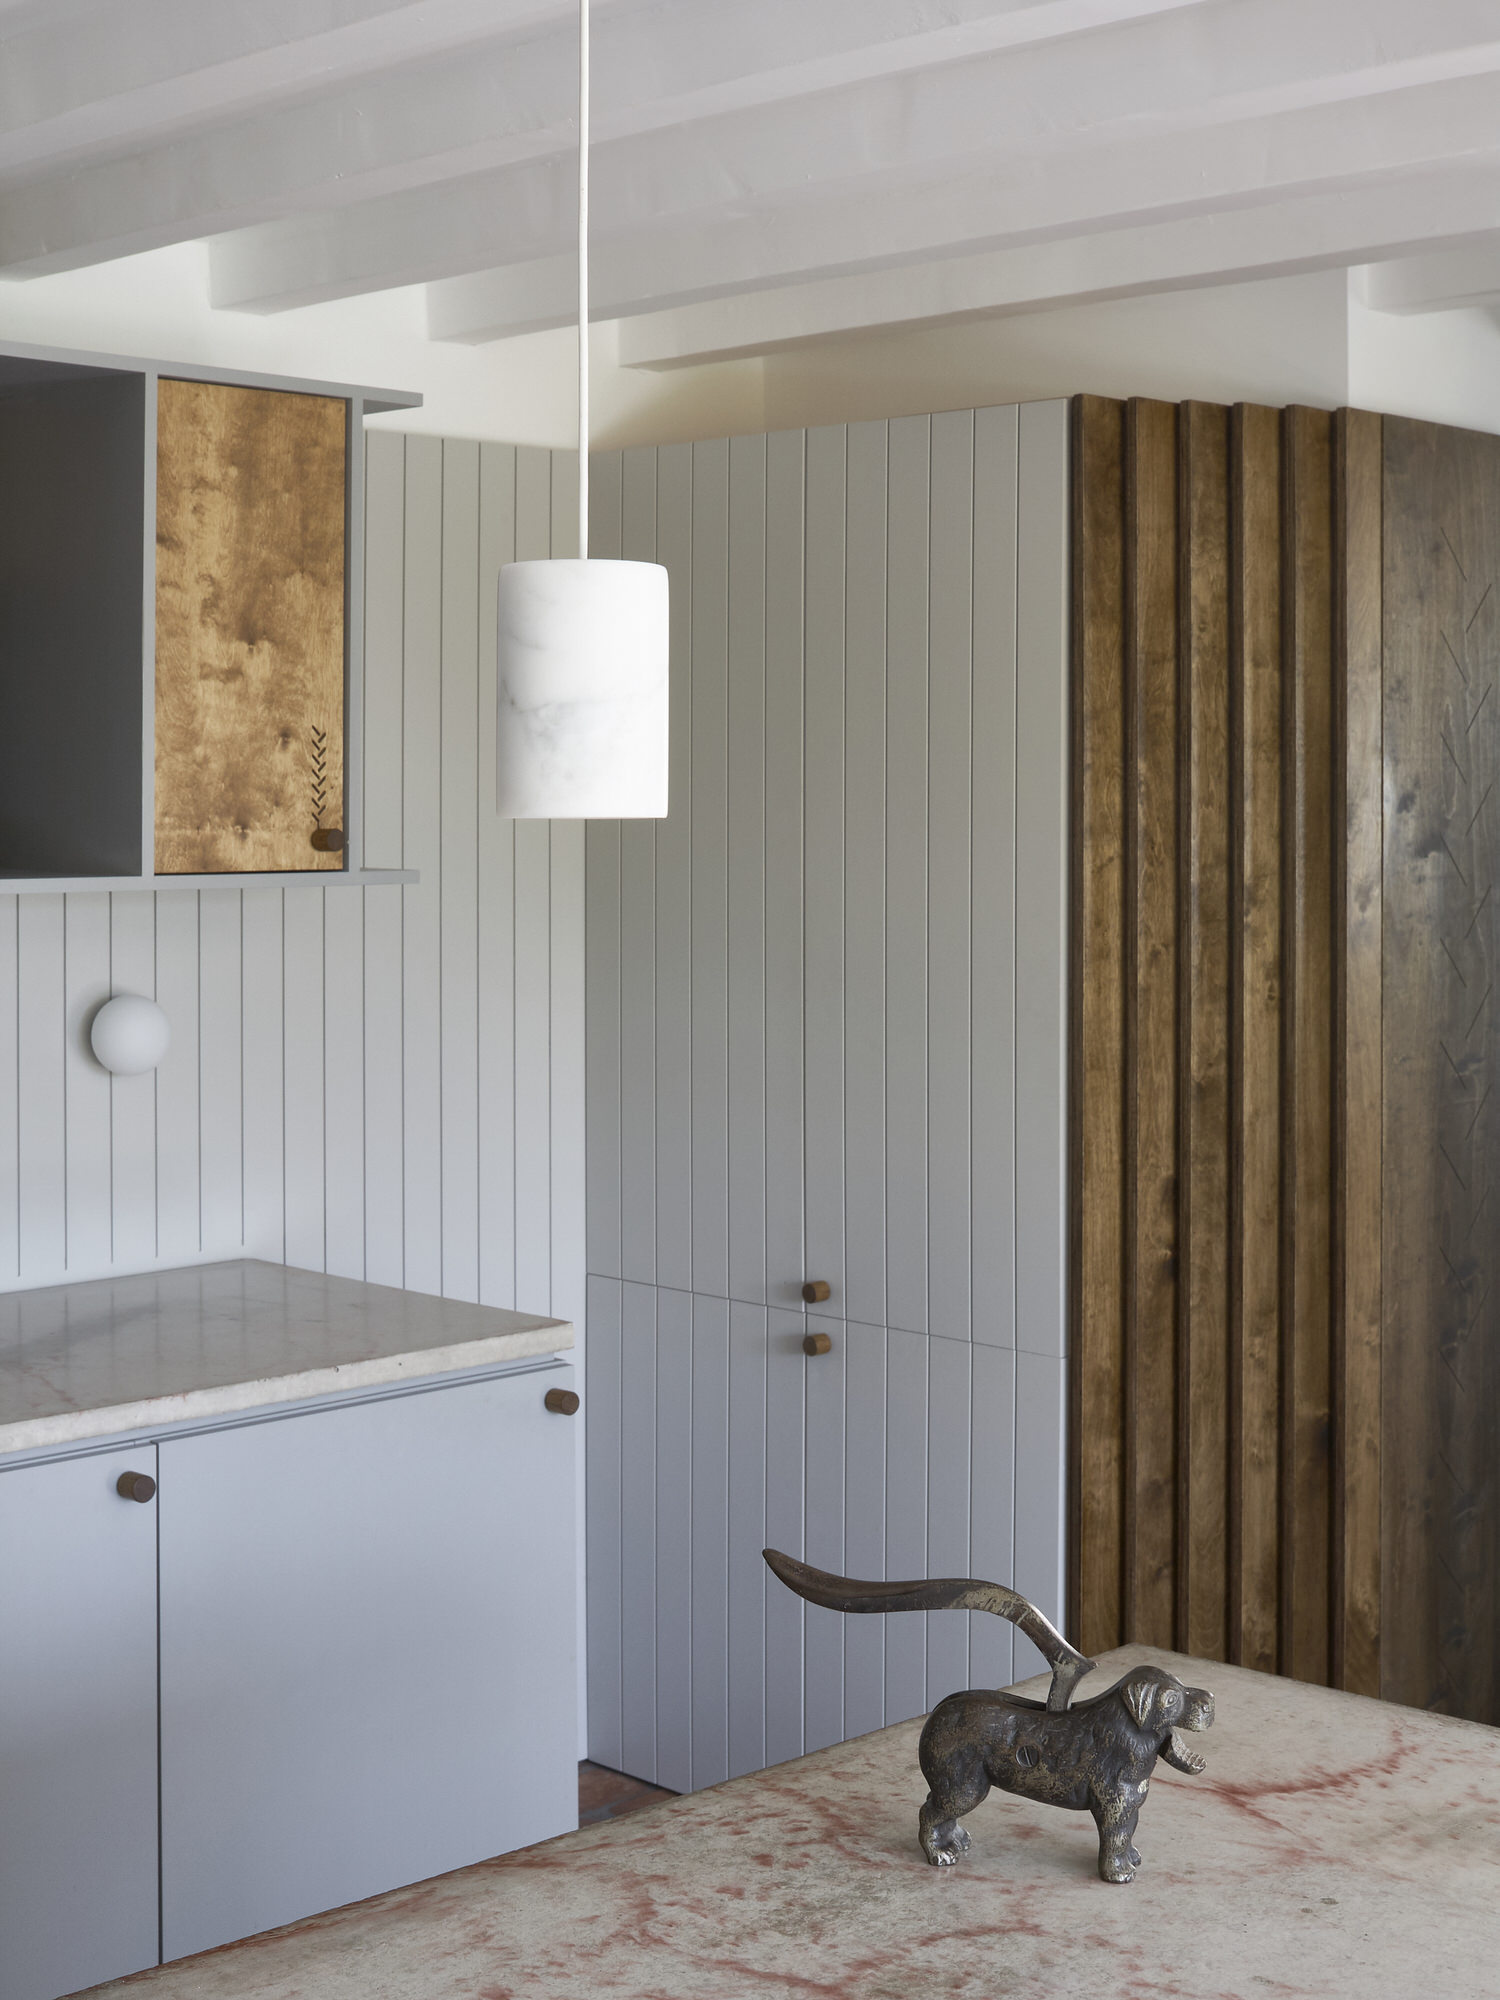 Carl Trenfield Architects, Room, Rural Kent, Kitchen Design, Photo Daniel Hewitt | Yellowtrace